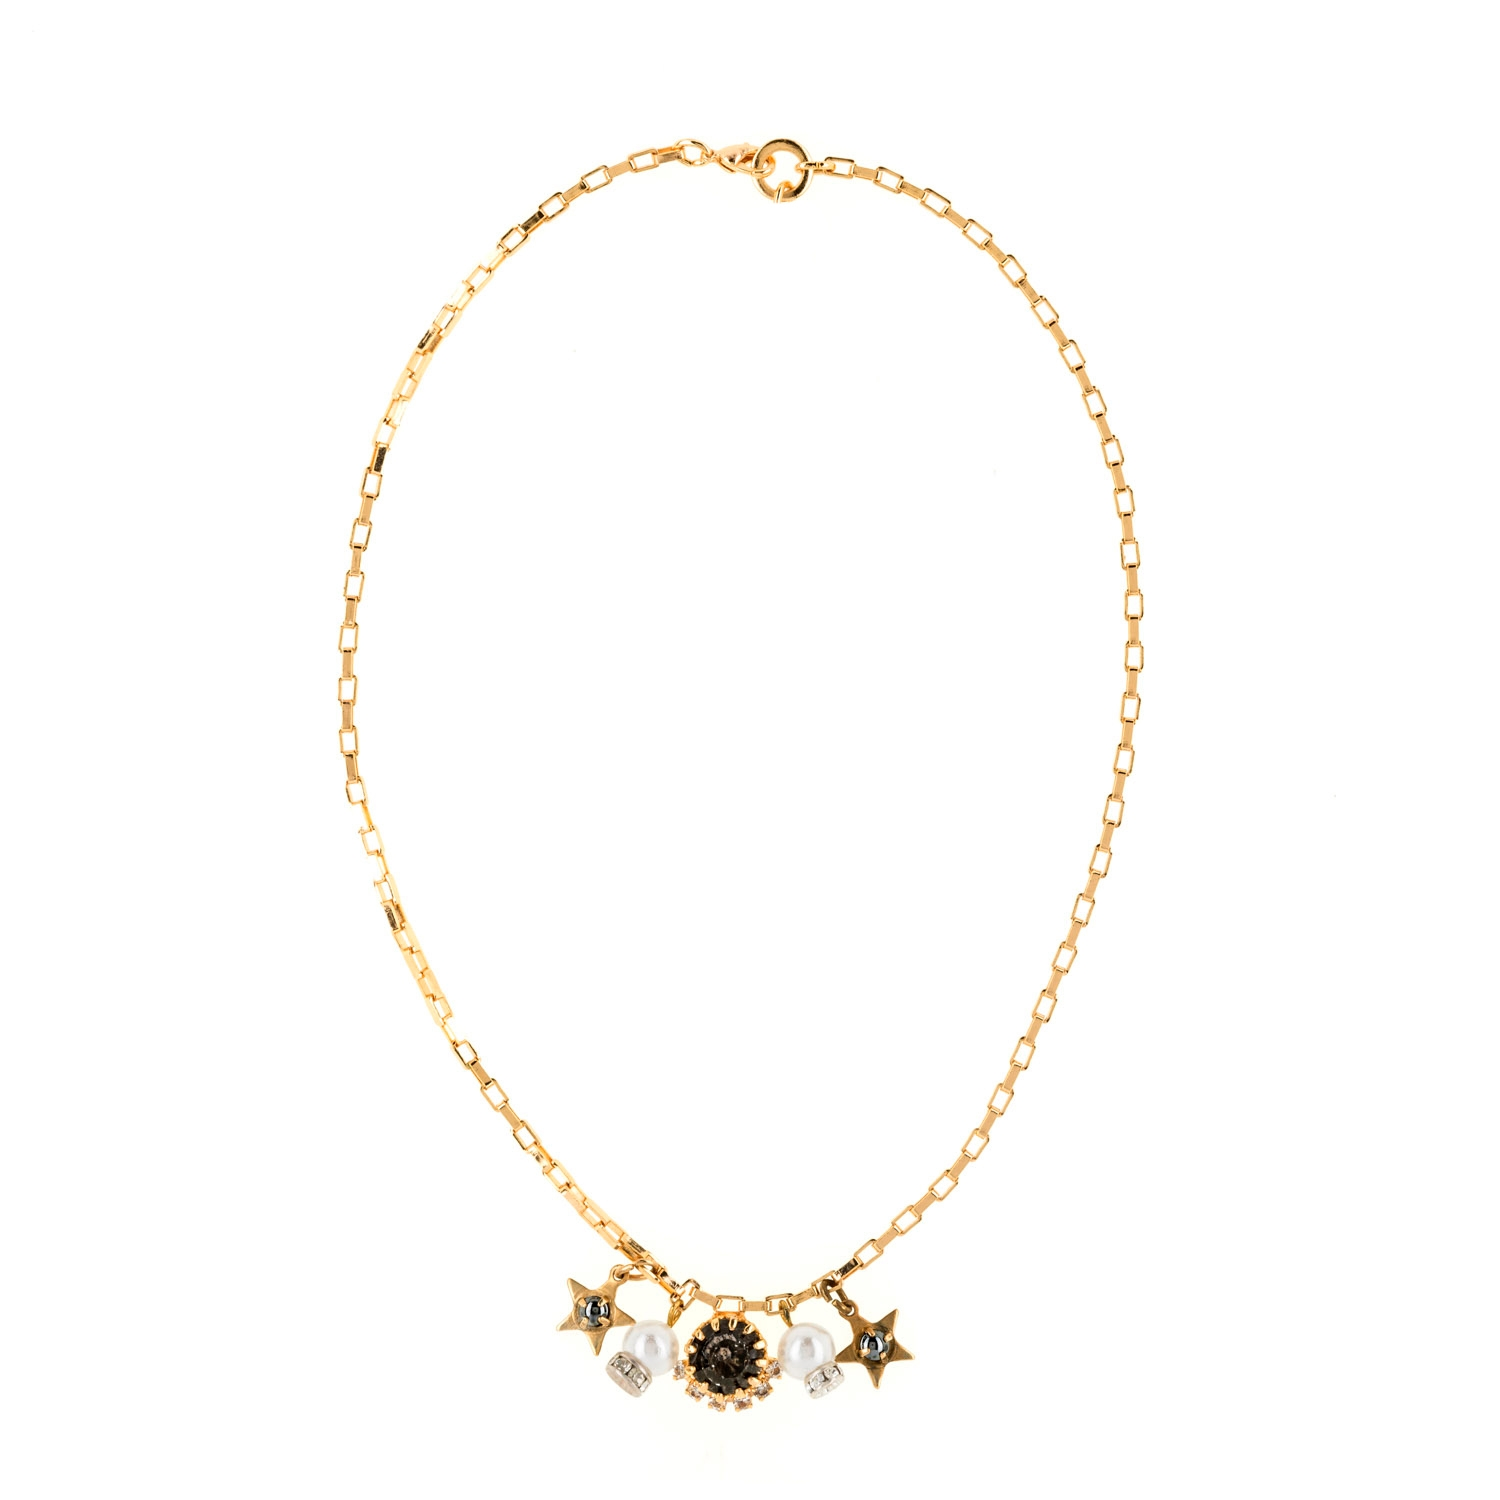 HALO & CO DAINTY CHARM CHAIN NECKLACE